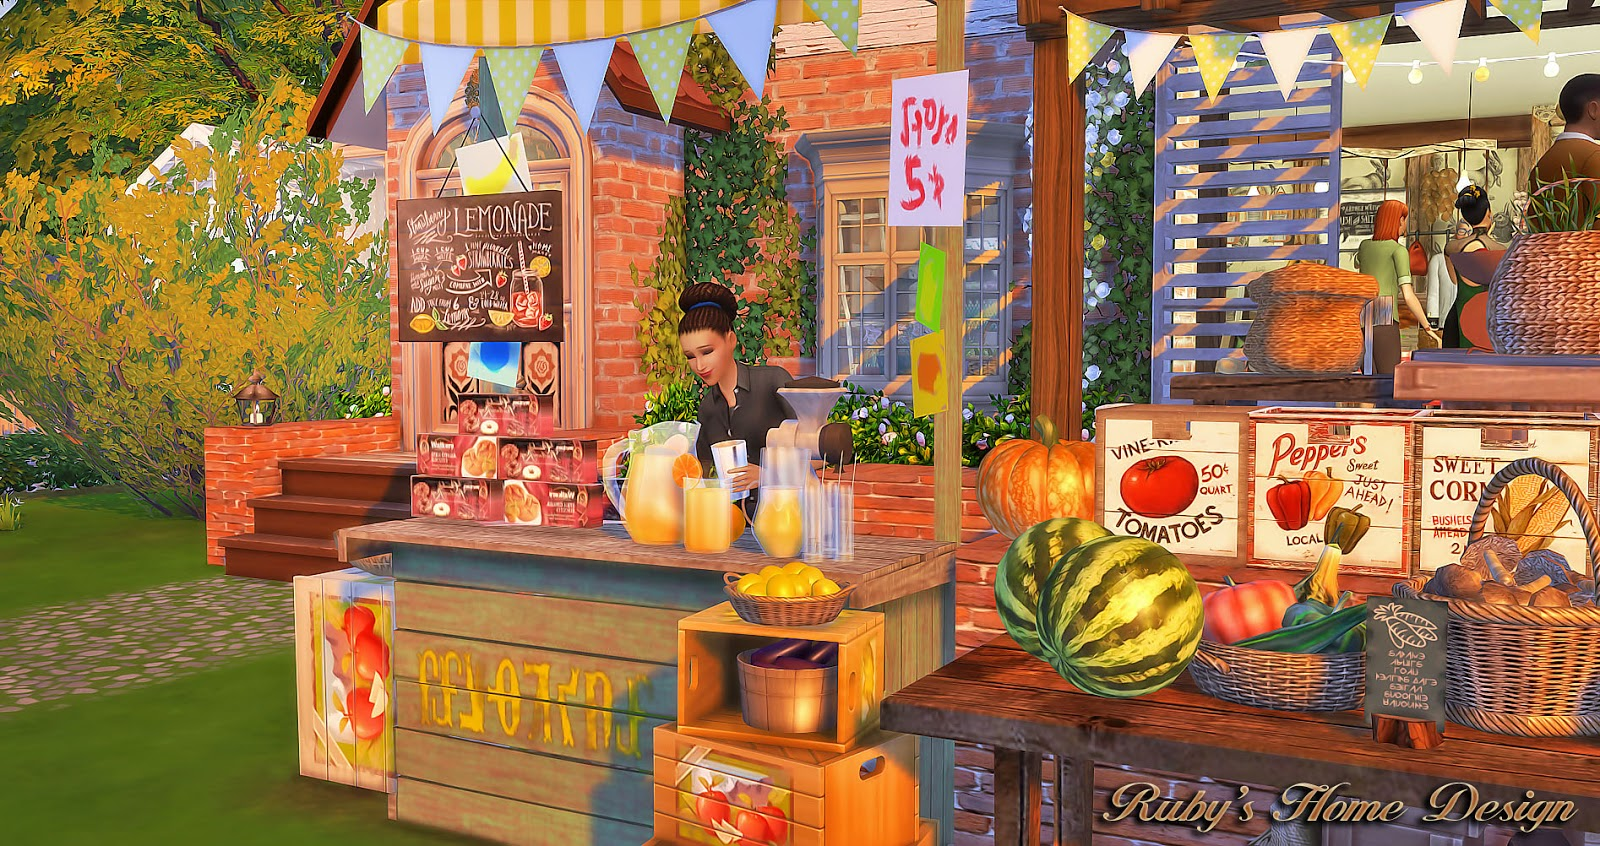 House Design Games Like Sims Sims 4 Farmer S Market 農莊的小市場 No Download Link Ruby S